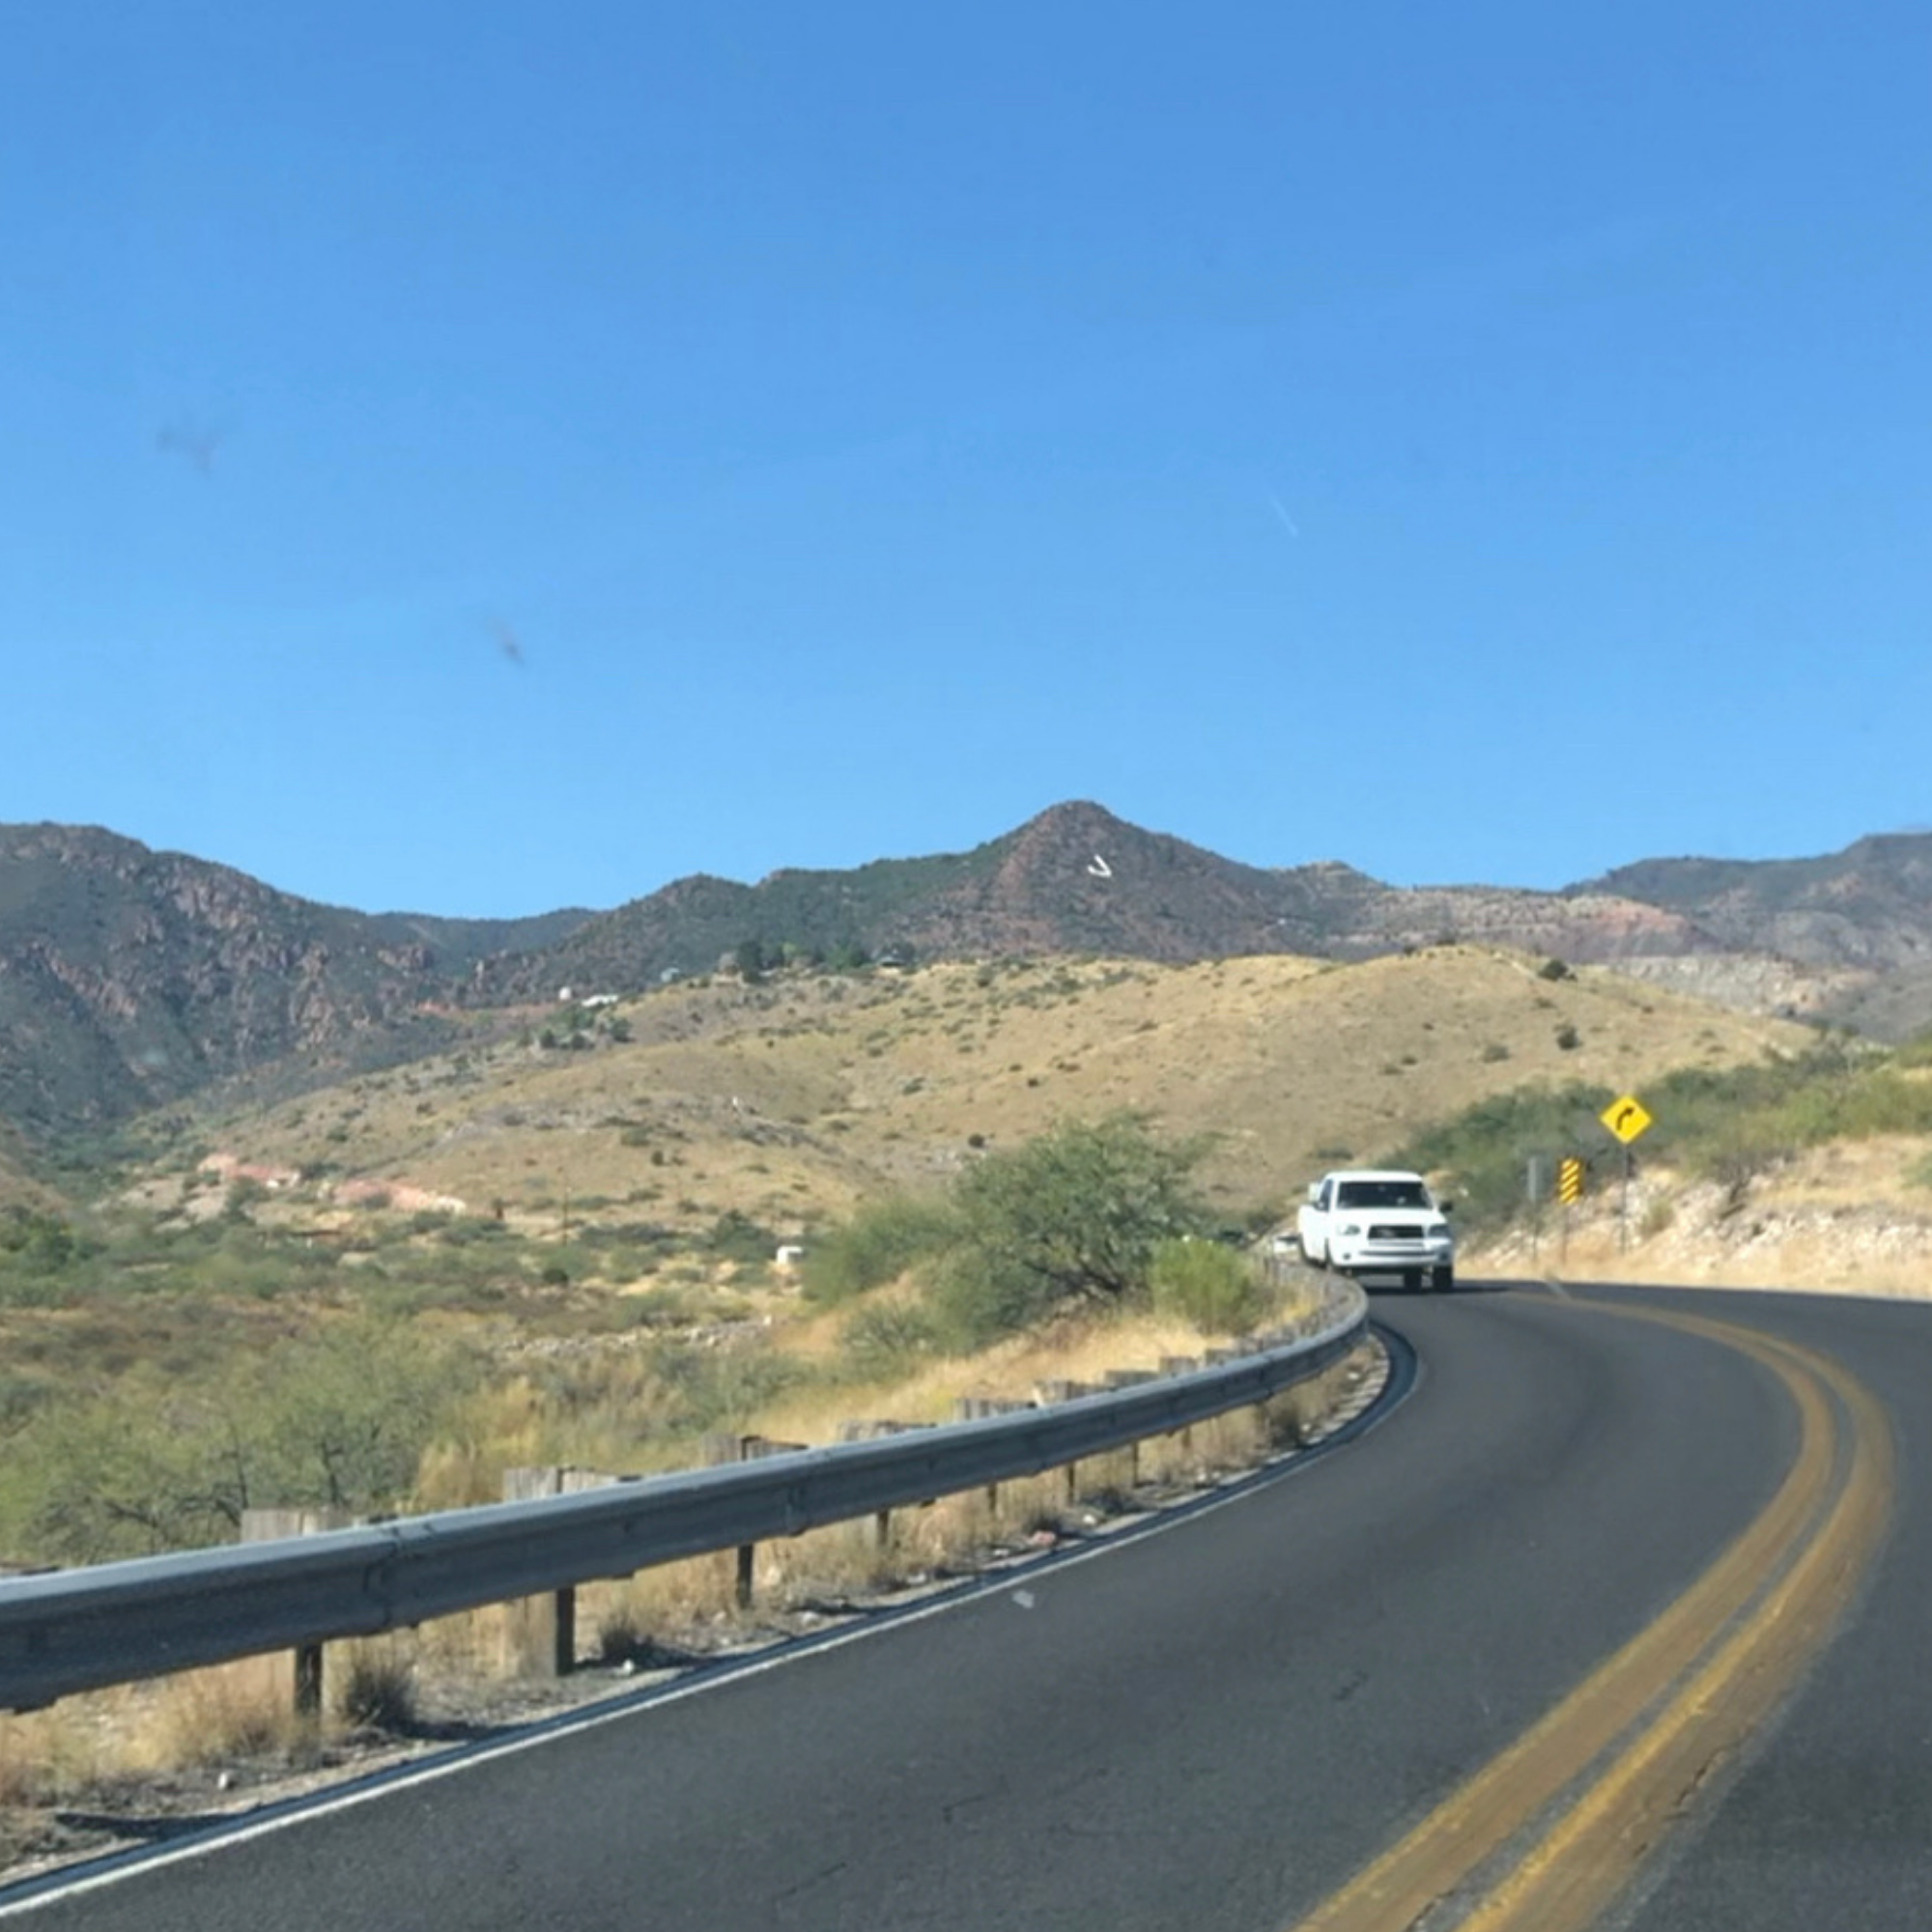 driving on road towards jerome arizona with the J on the side of the mountain